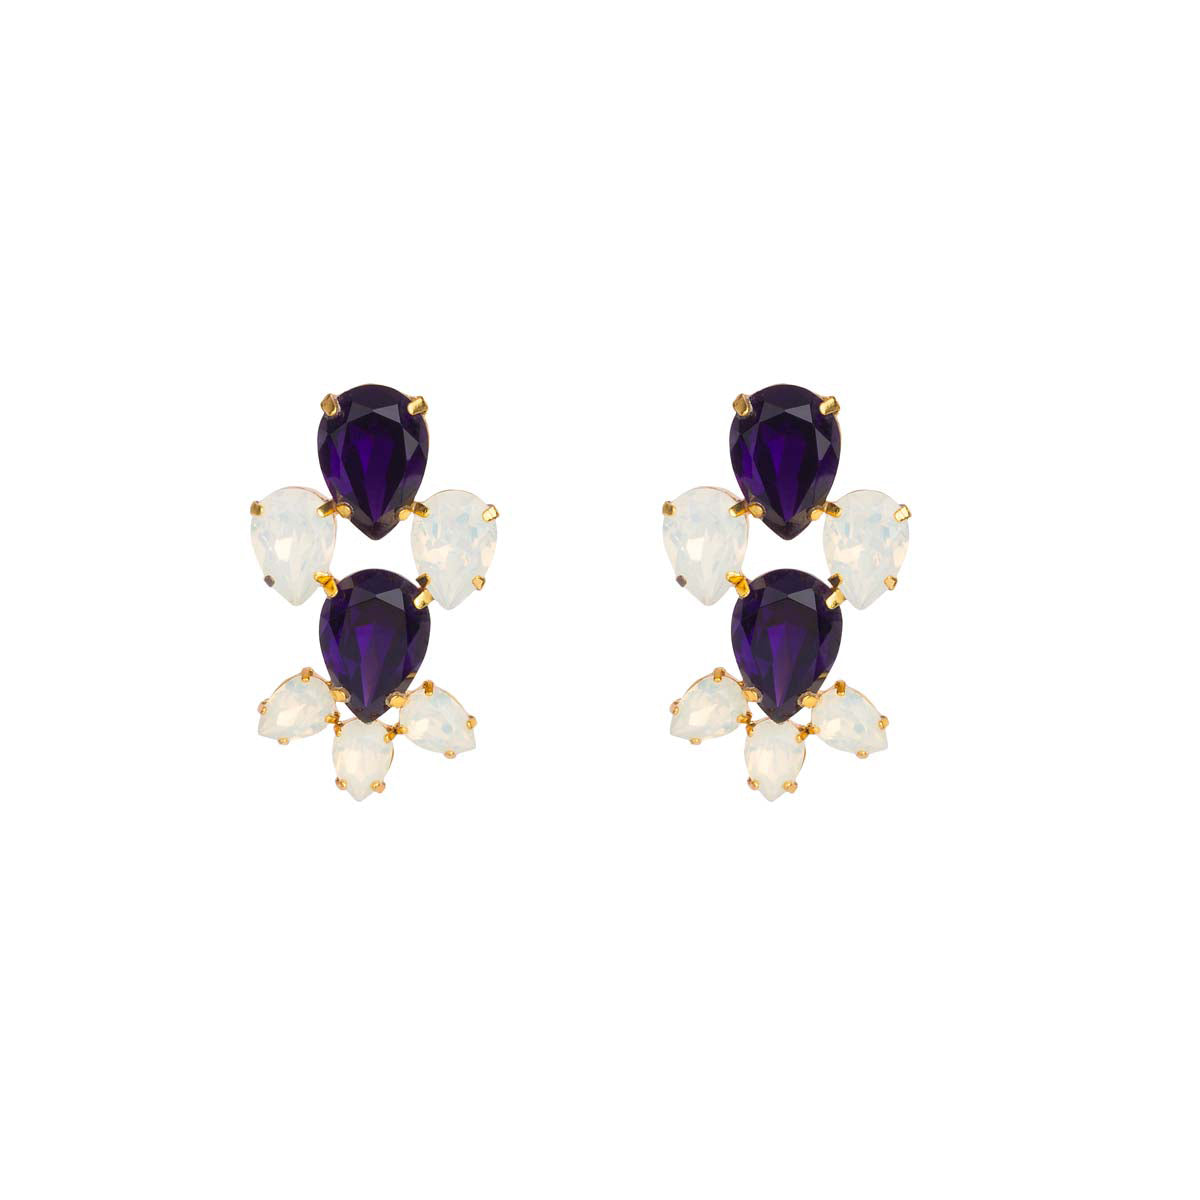 Dynamic in their dimensional design - turn your diva up with these gold plated earrings encrusted with white opal and purple Swarovski elements.